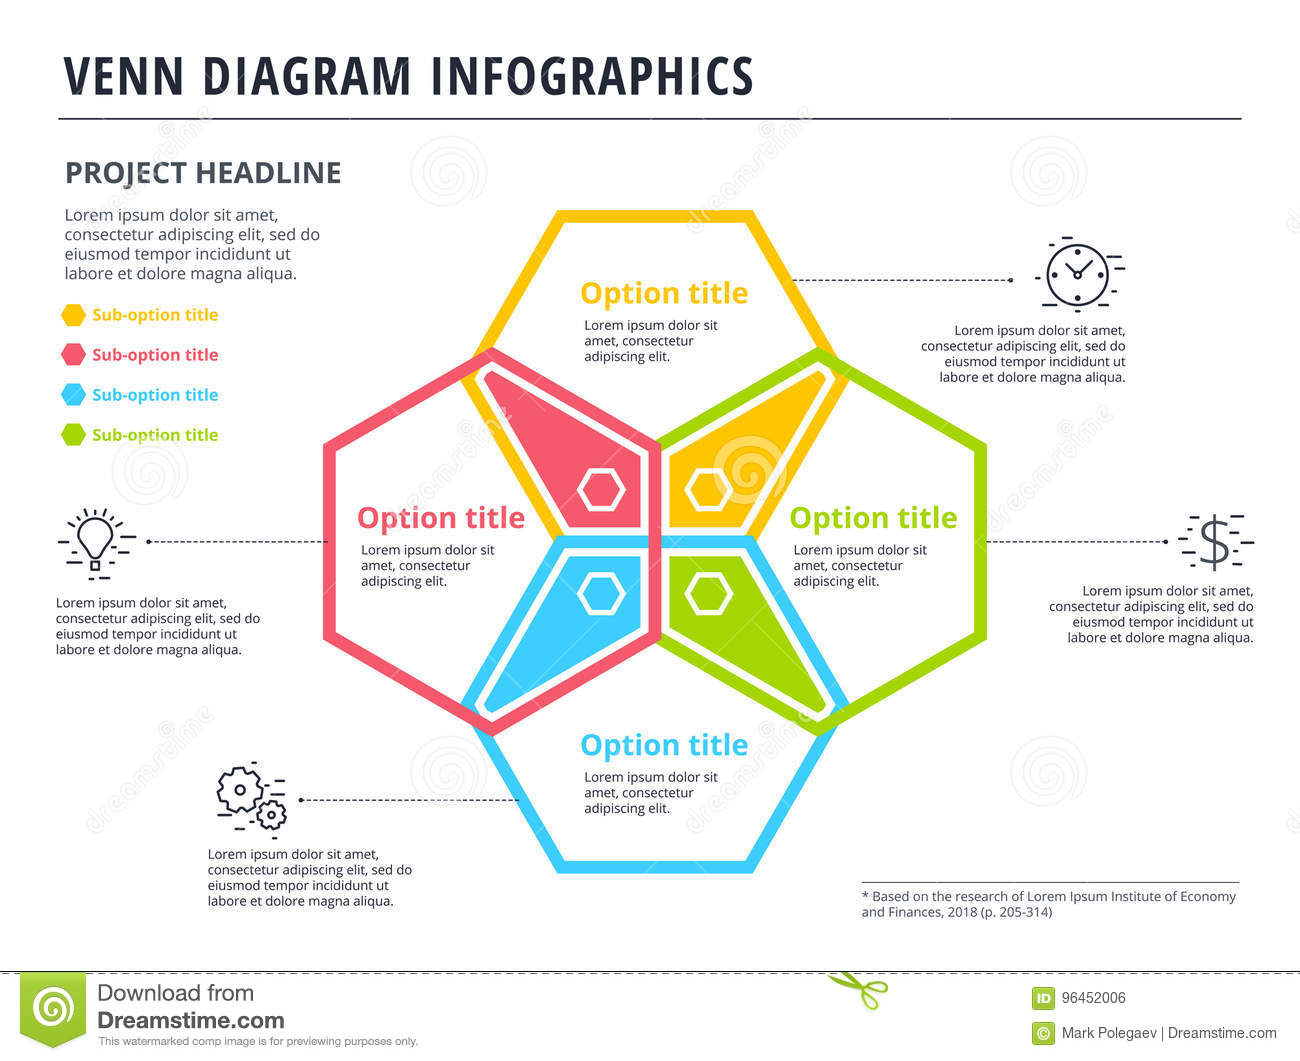 hight resolution of venn diagram with 4 circles infographics template design vector overlapping shapes for set or logic graphic illustration